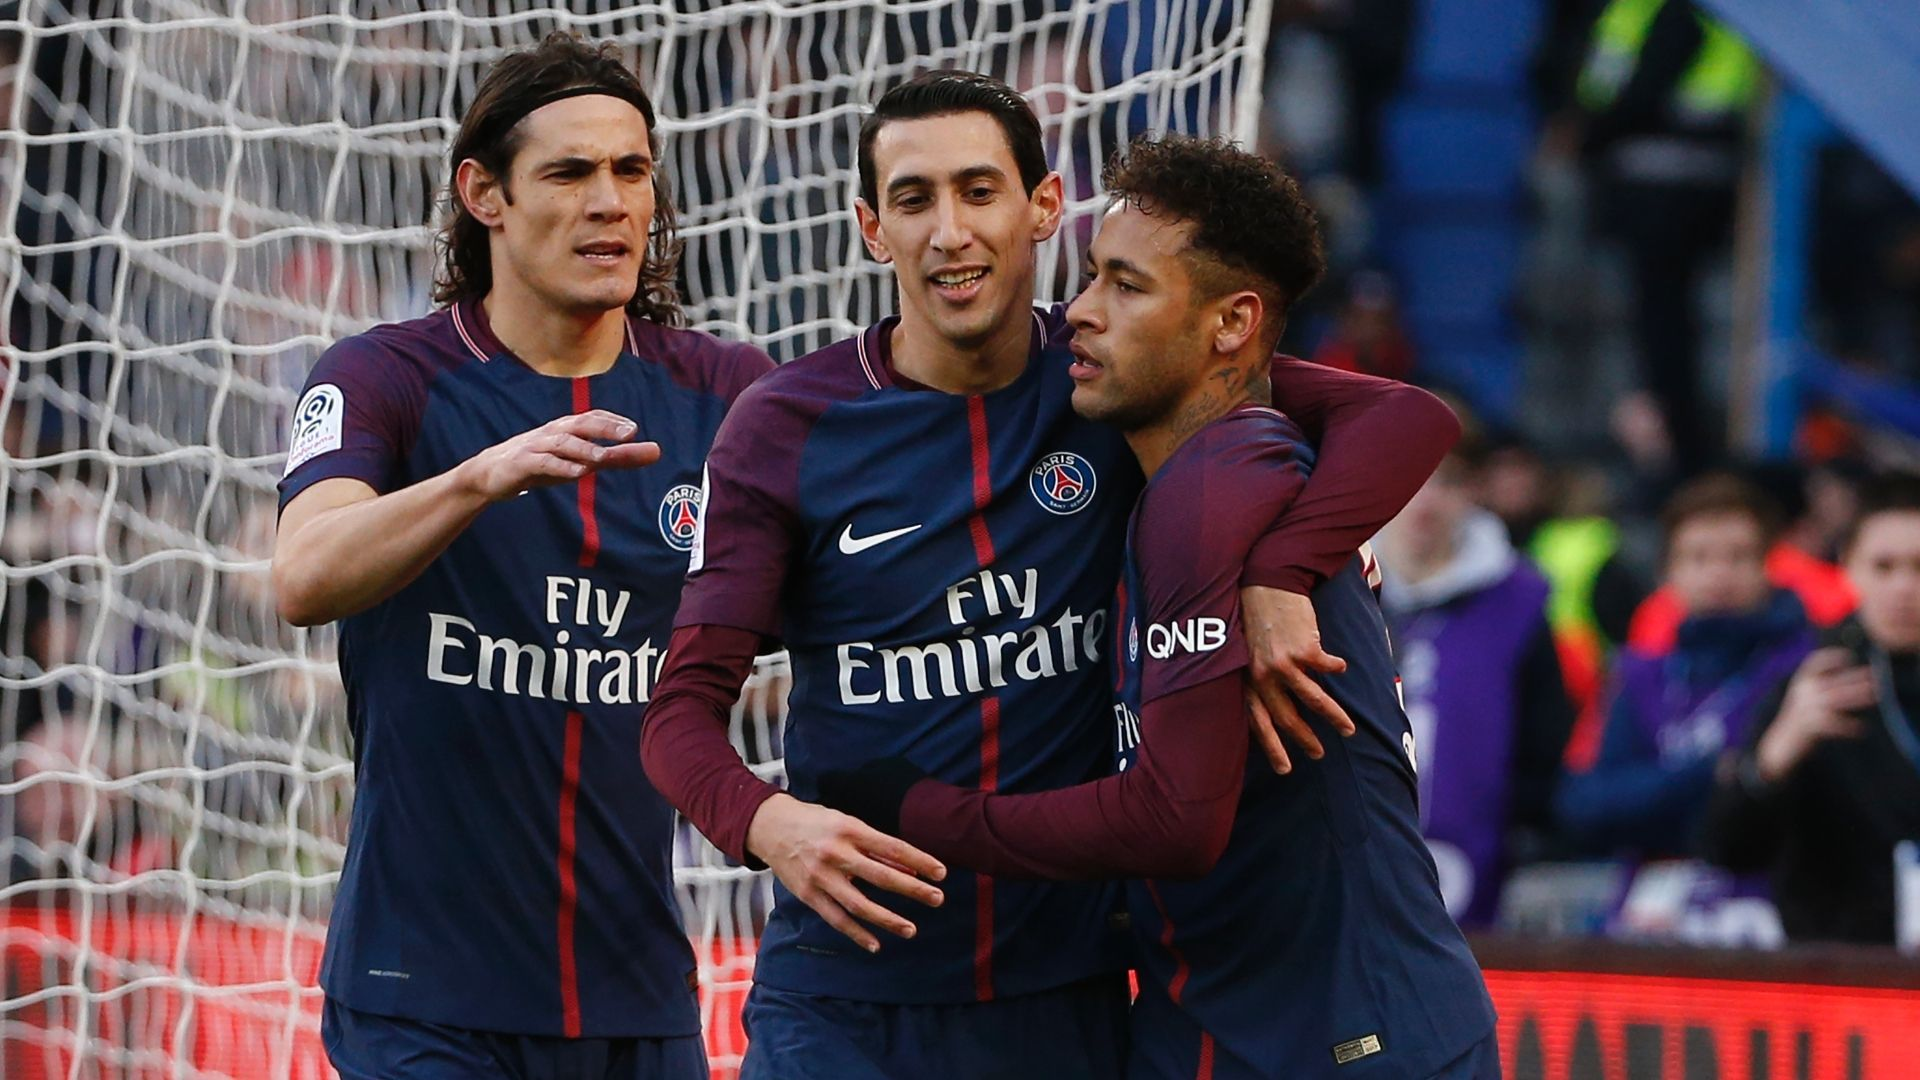 Paris to crowded for Cavani, Neymar, Mbappe